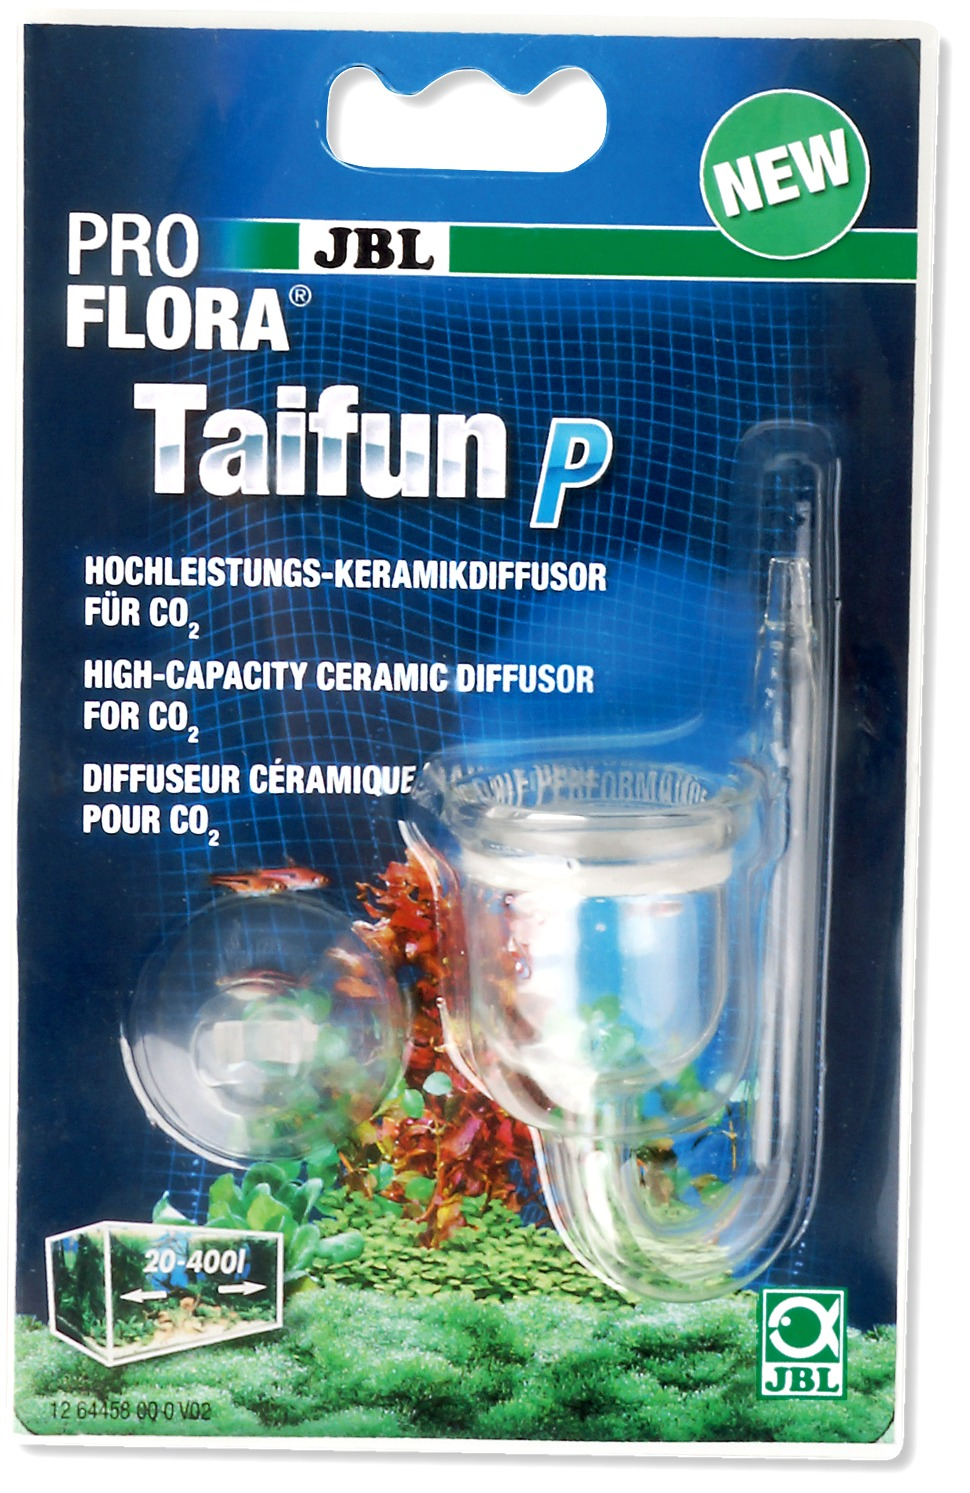 JBL-Proflora-Taifun-P-Nano-mini-diffuseur-CO2-aquarium